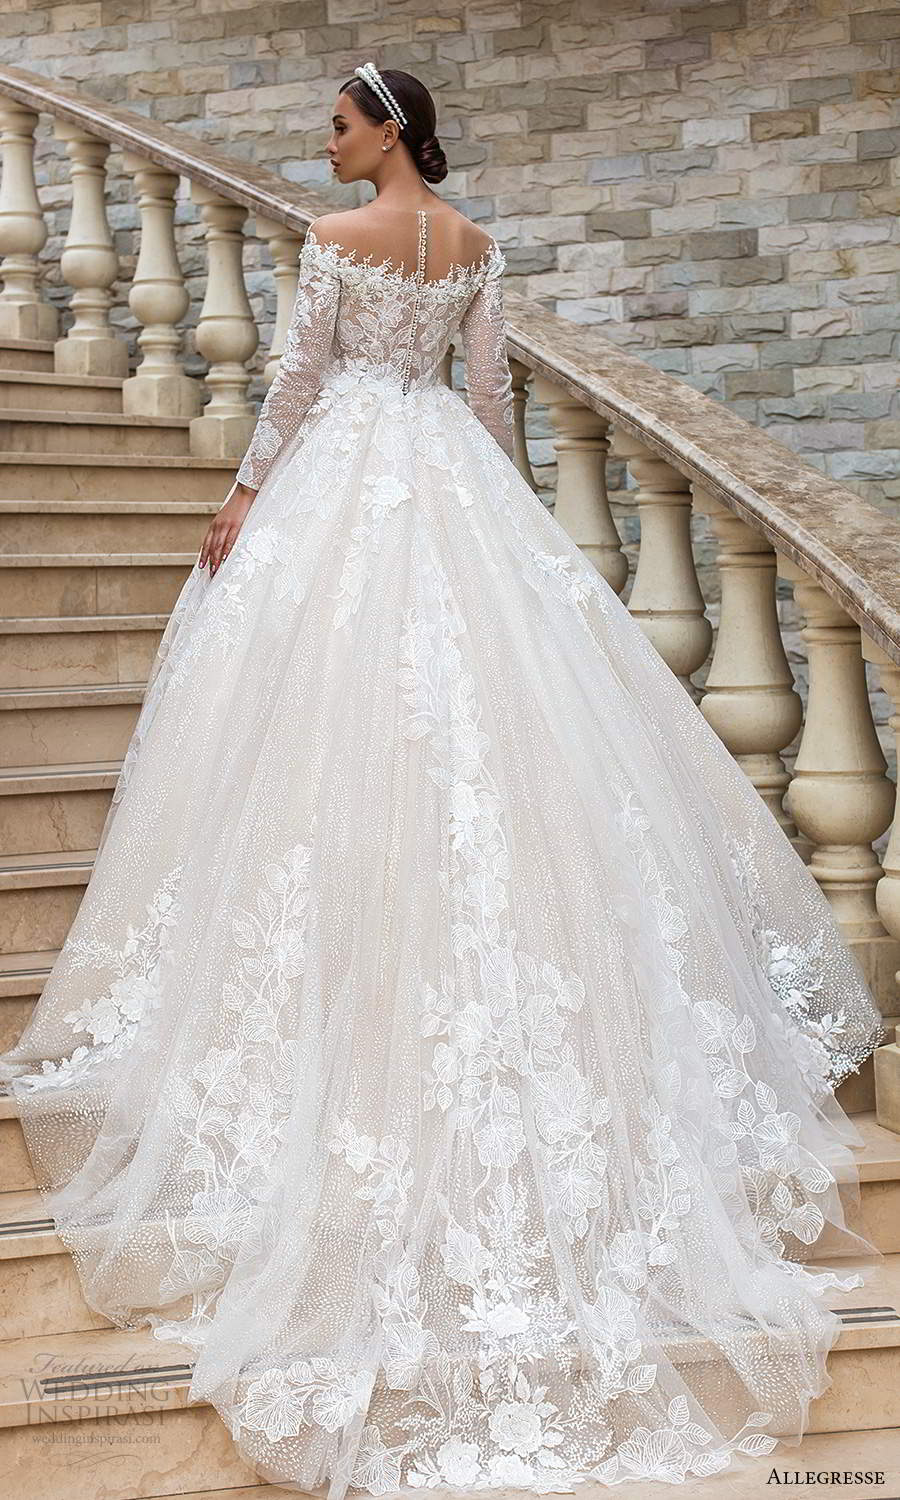 allegresse 2021 bridal long sleeves off shoulder neckline fully embellished a line ball gown princess wedding dress chapel train (14) bv